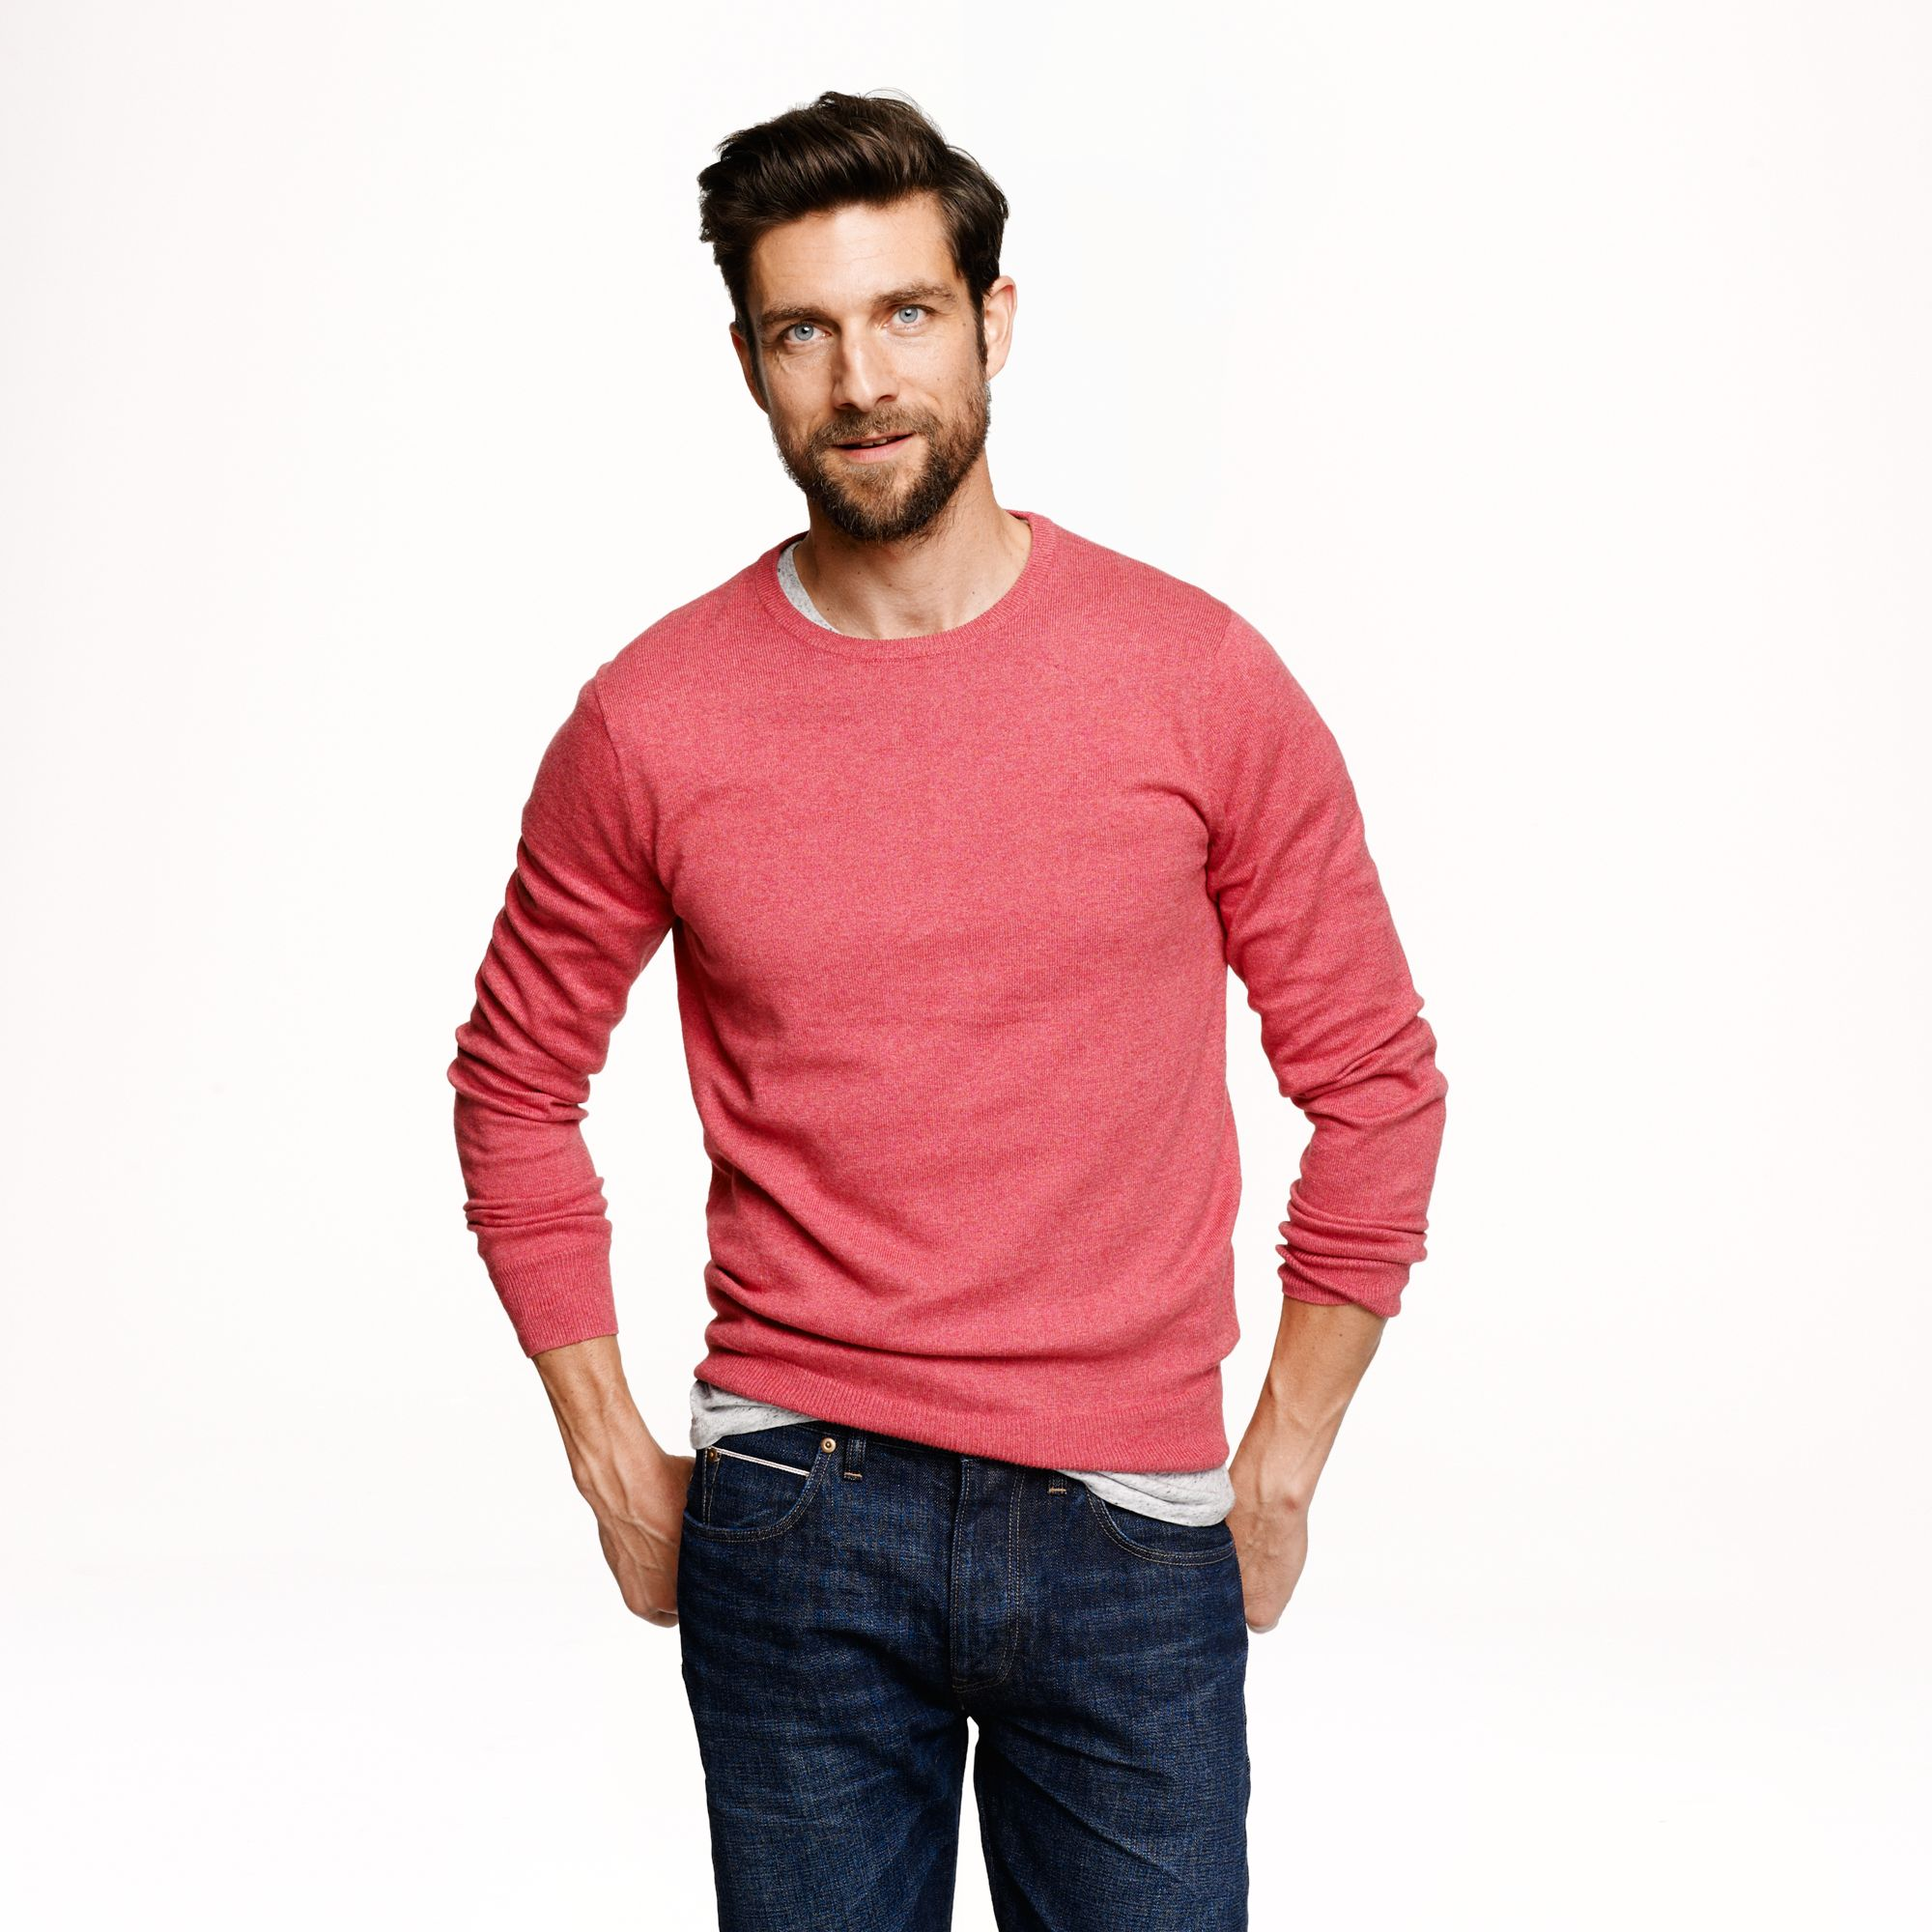 96418785d9a4 Lyst - J.Crew Tall Cotton cashmere Crewneck Sweater in Red for Men